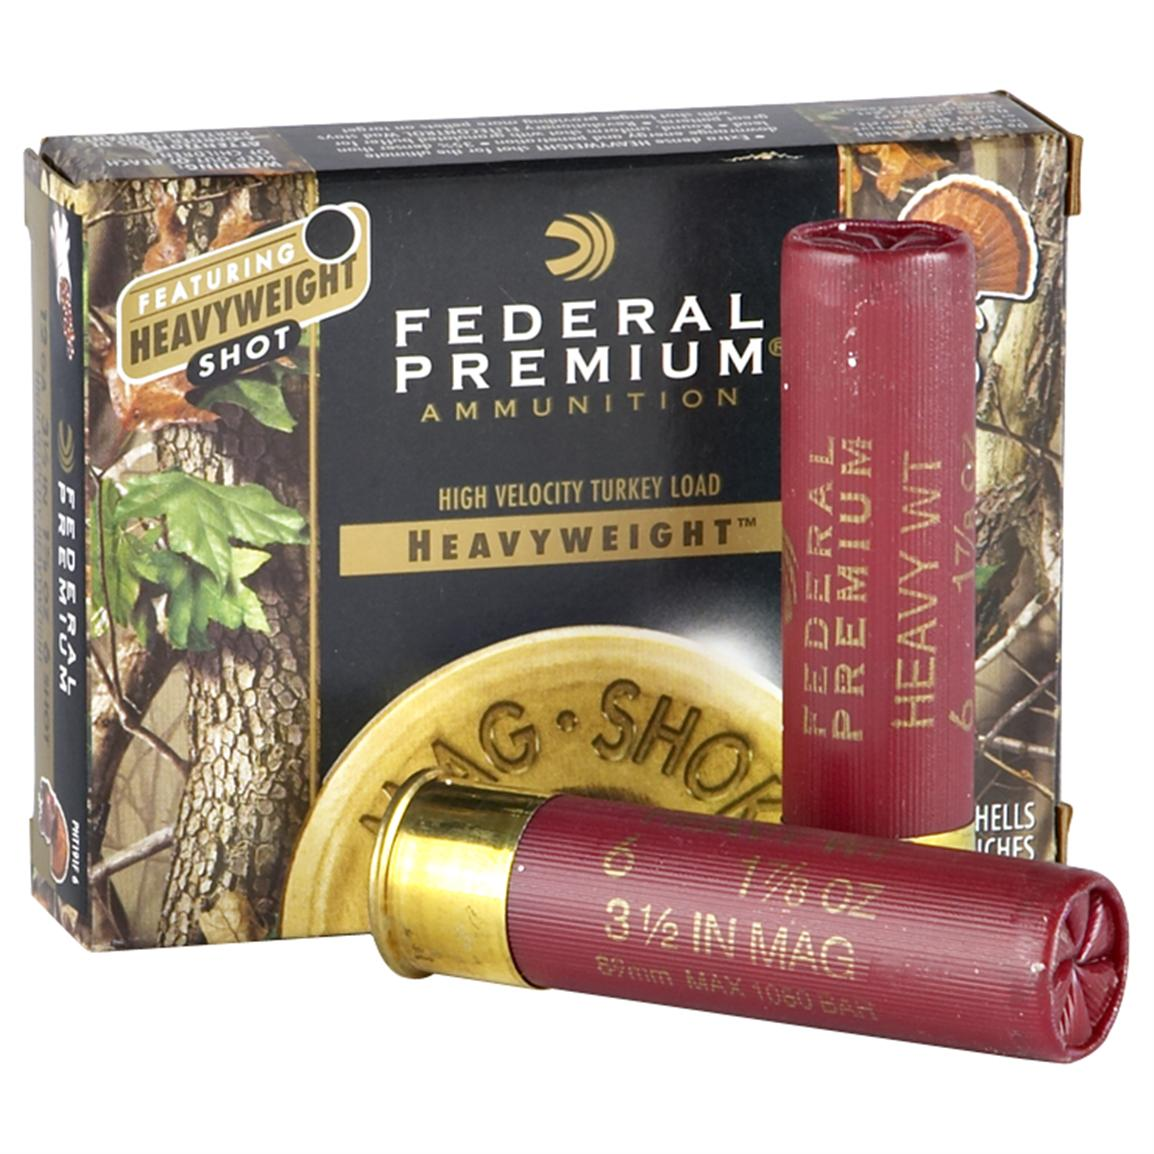 "5 rounds Federal Premium® Mag - Shok"" Heavyweight® Turkey Loads."